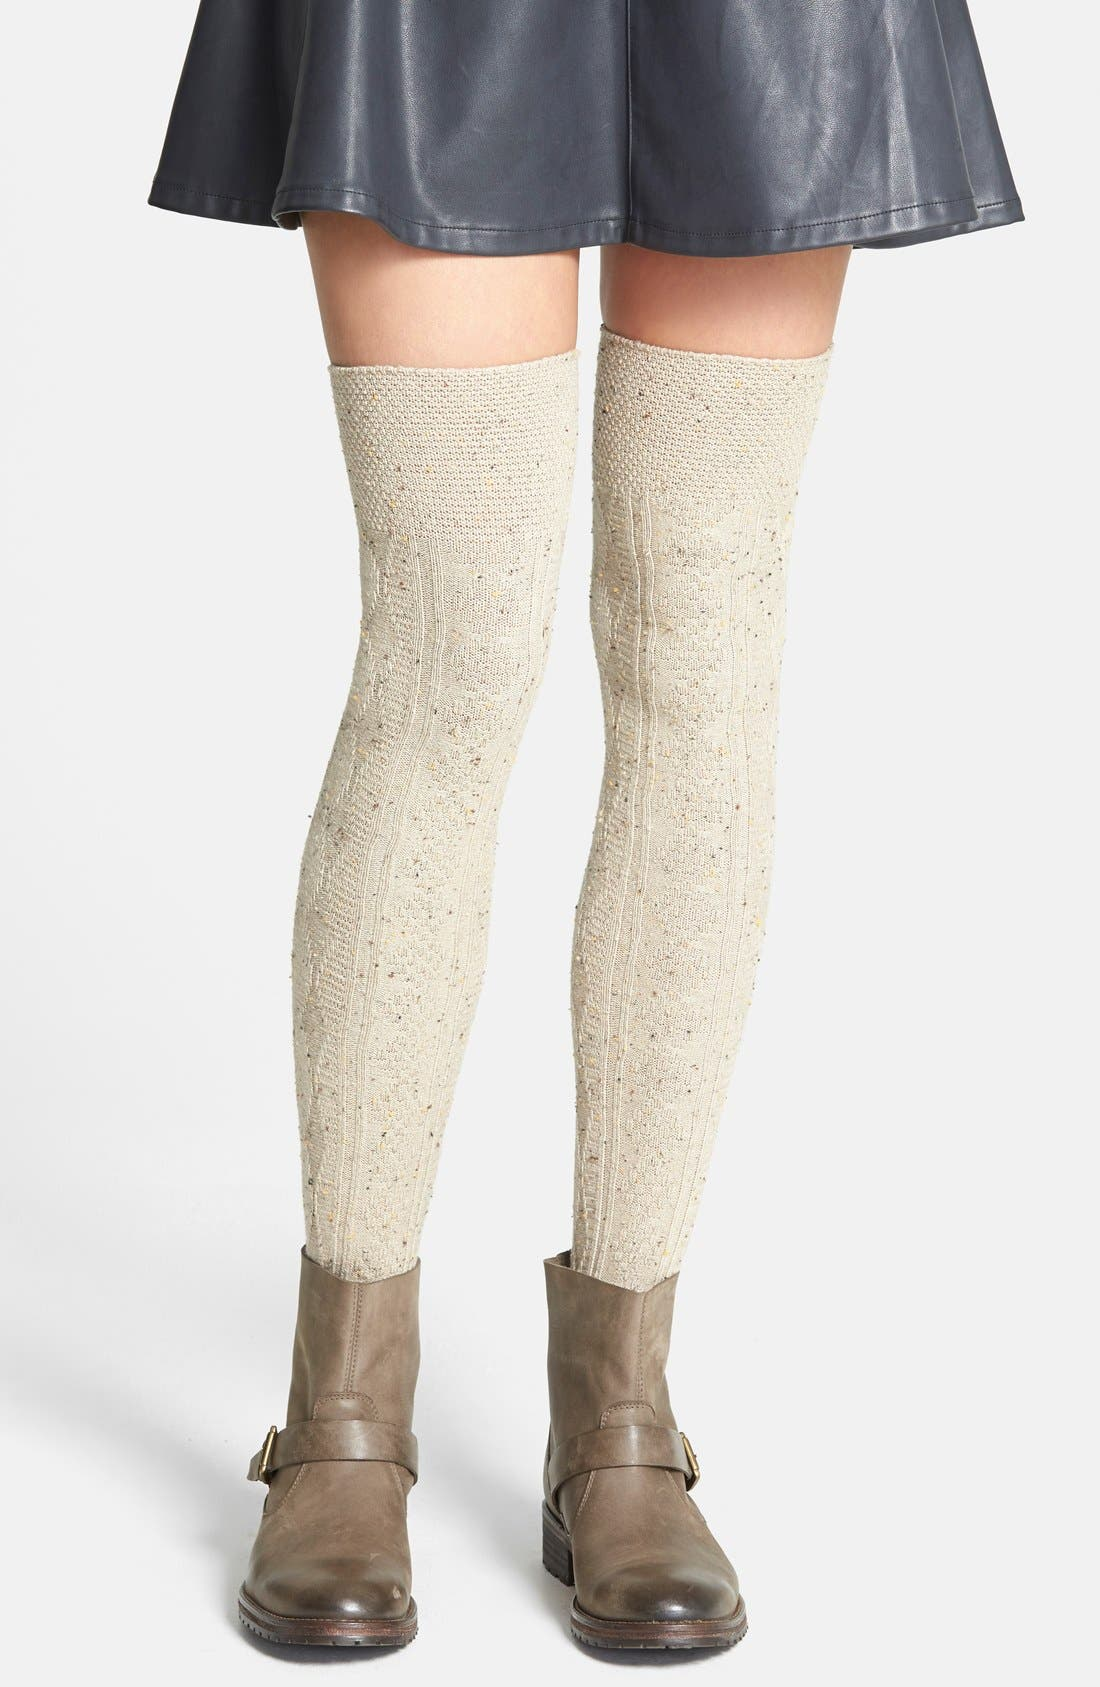 Alternate Image 1 Selected - Nordstrom 'Confetti' Over The Knee Socks